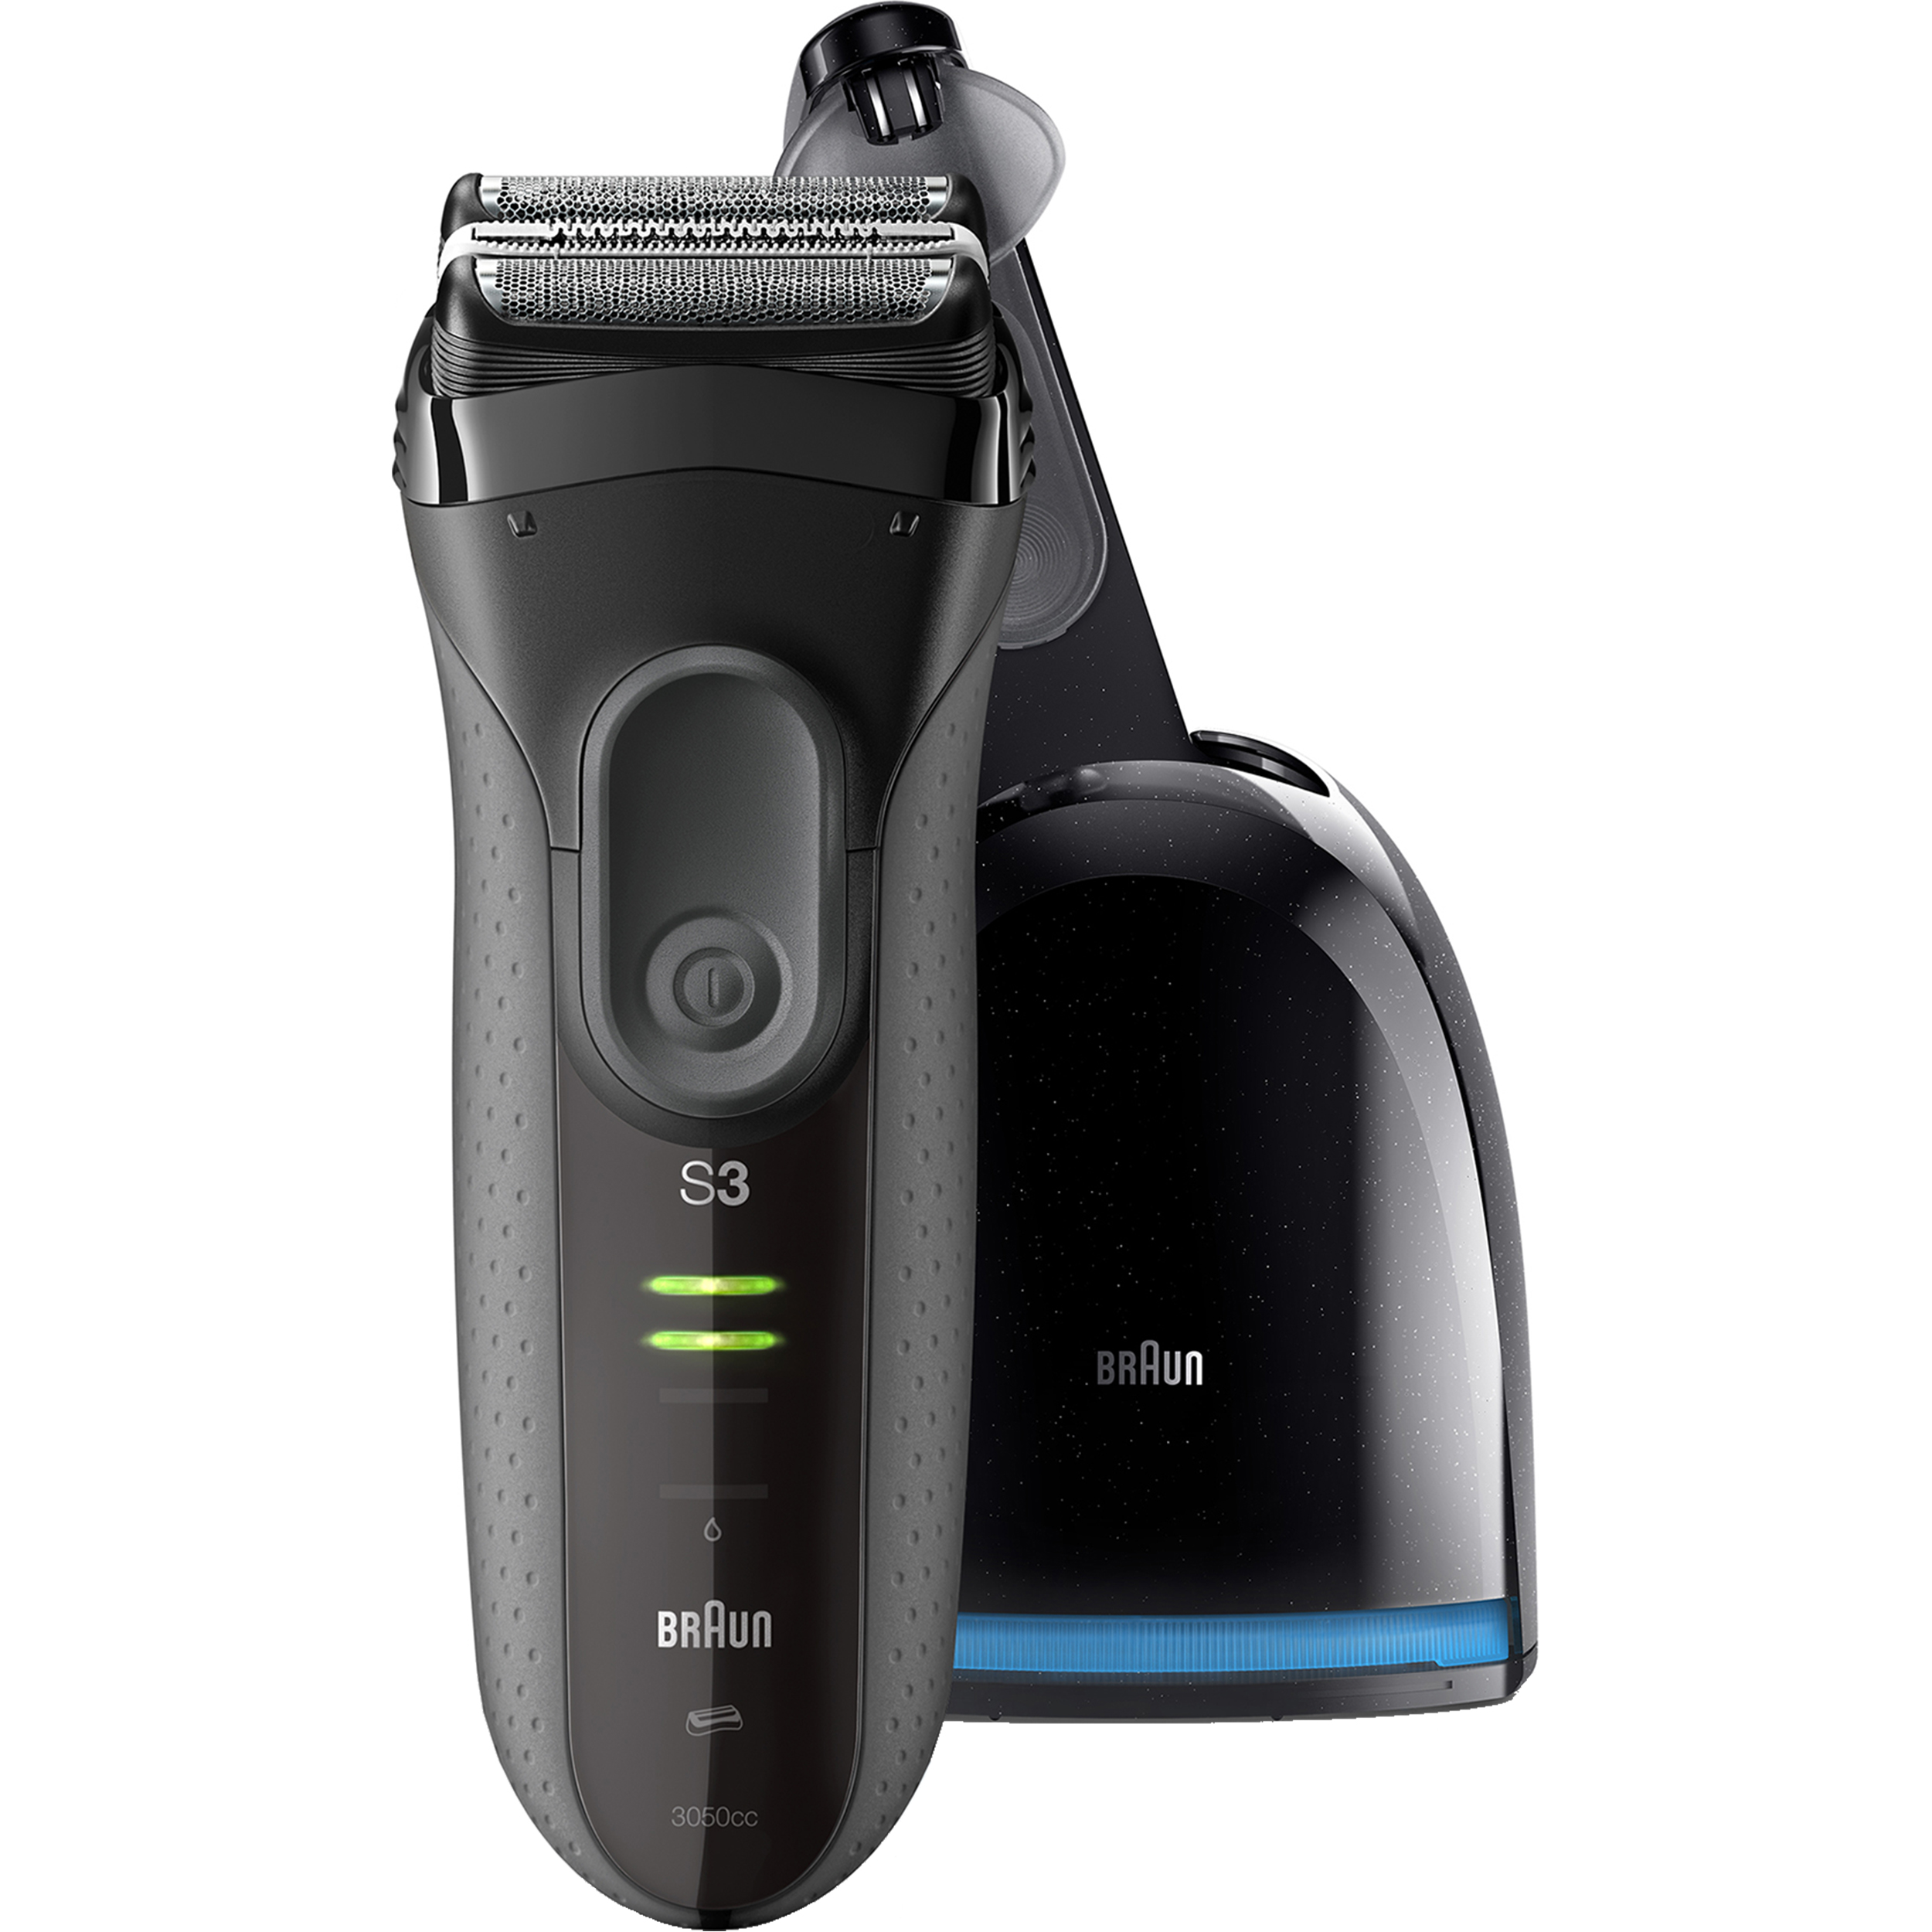 Braun Series 3 ProSkin 3050cc ($15 Mail In Rebate Available) Electric Shaver for Men / Rechargeable Electric Razor with Clean&Charge System, Black